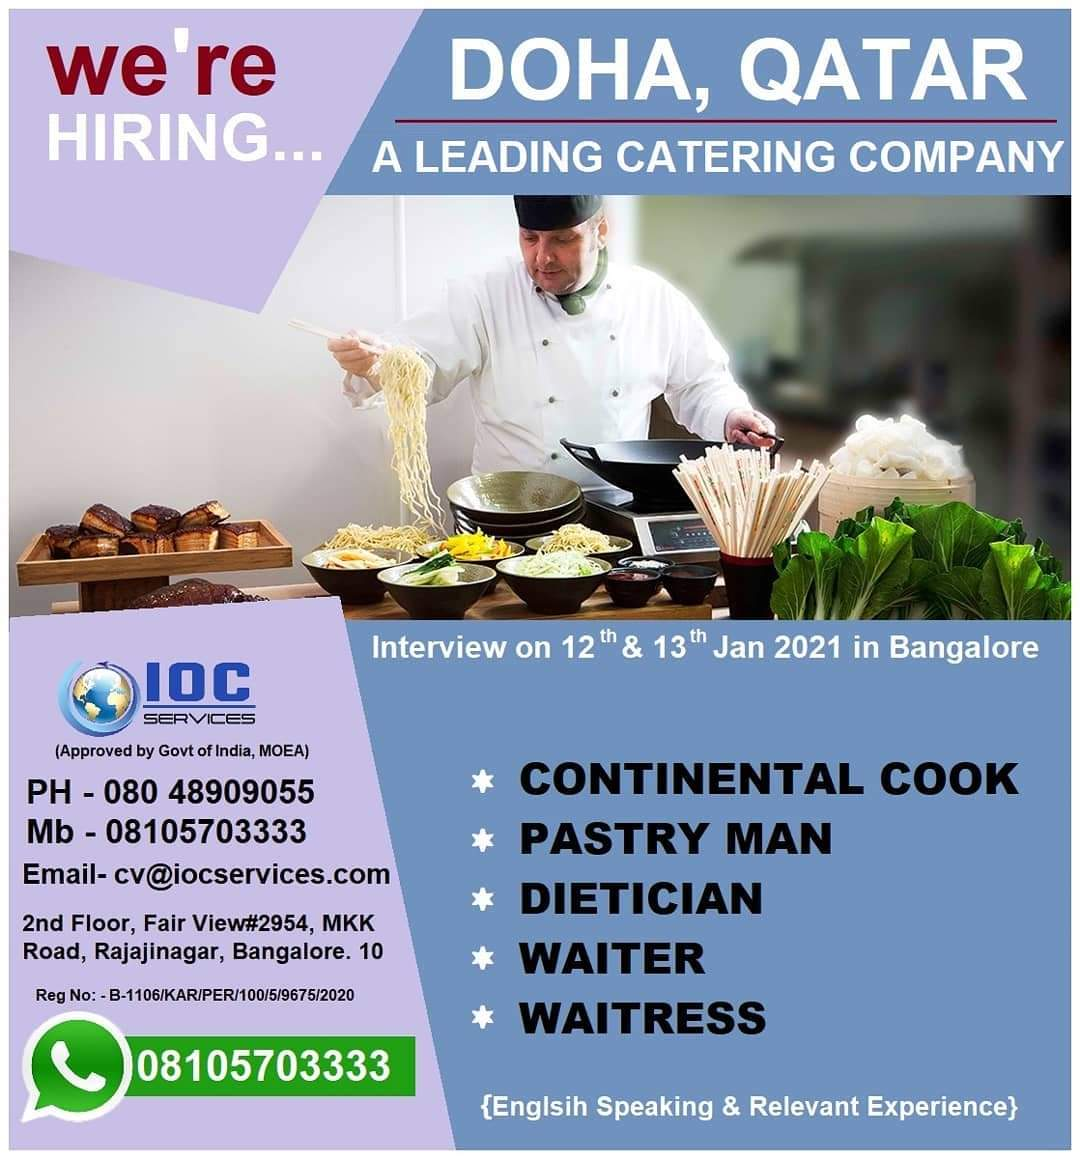 URGENTLY REQUIRED FOR A LEADING CATERING COMPANY